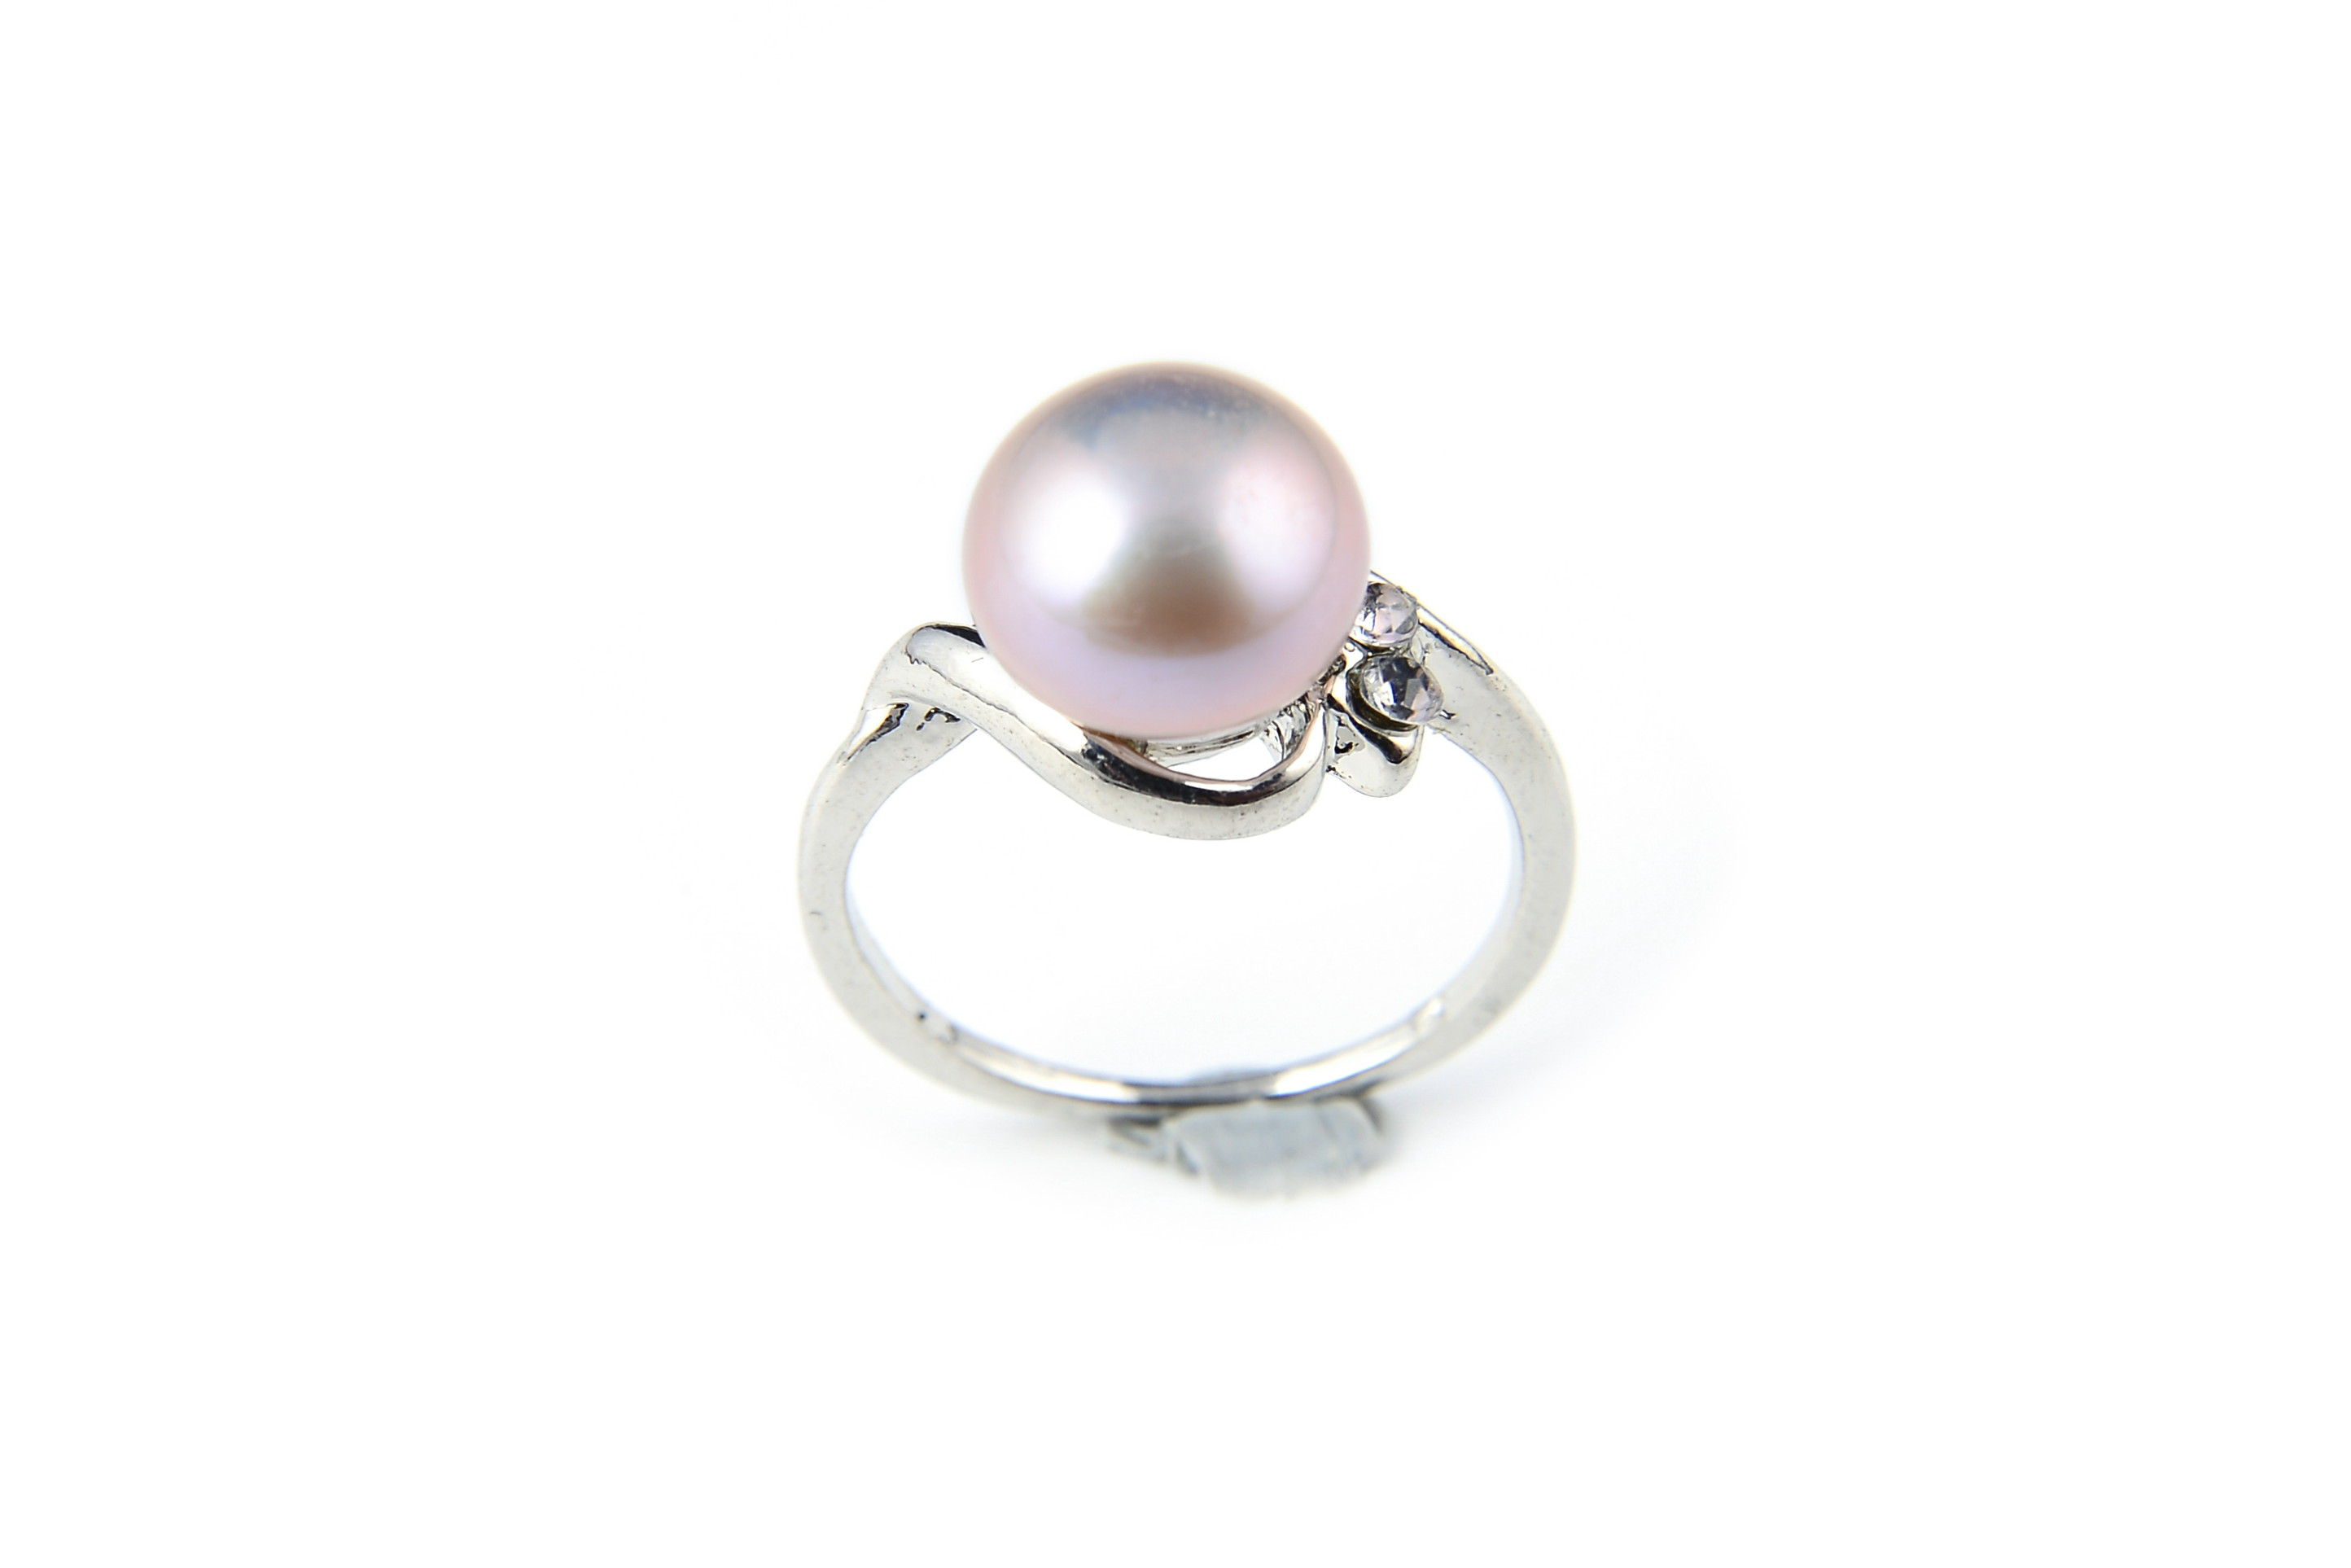 9mm AAA Lavender Freshwater Cultured Pearl Ring - Various sizes -rg61